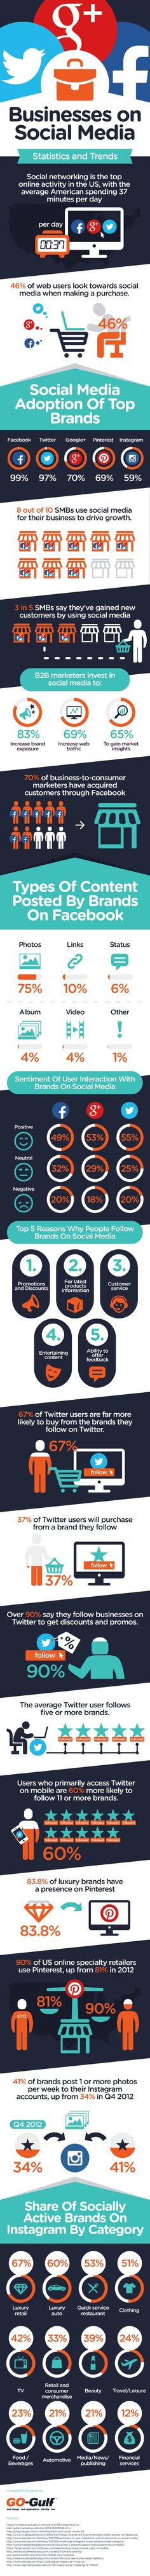 Why Do We Follow Brands on #SocialMedia? Statistics and Trends